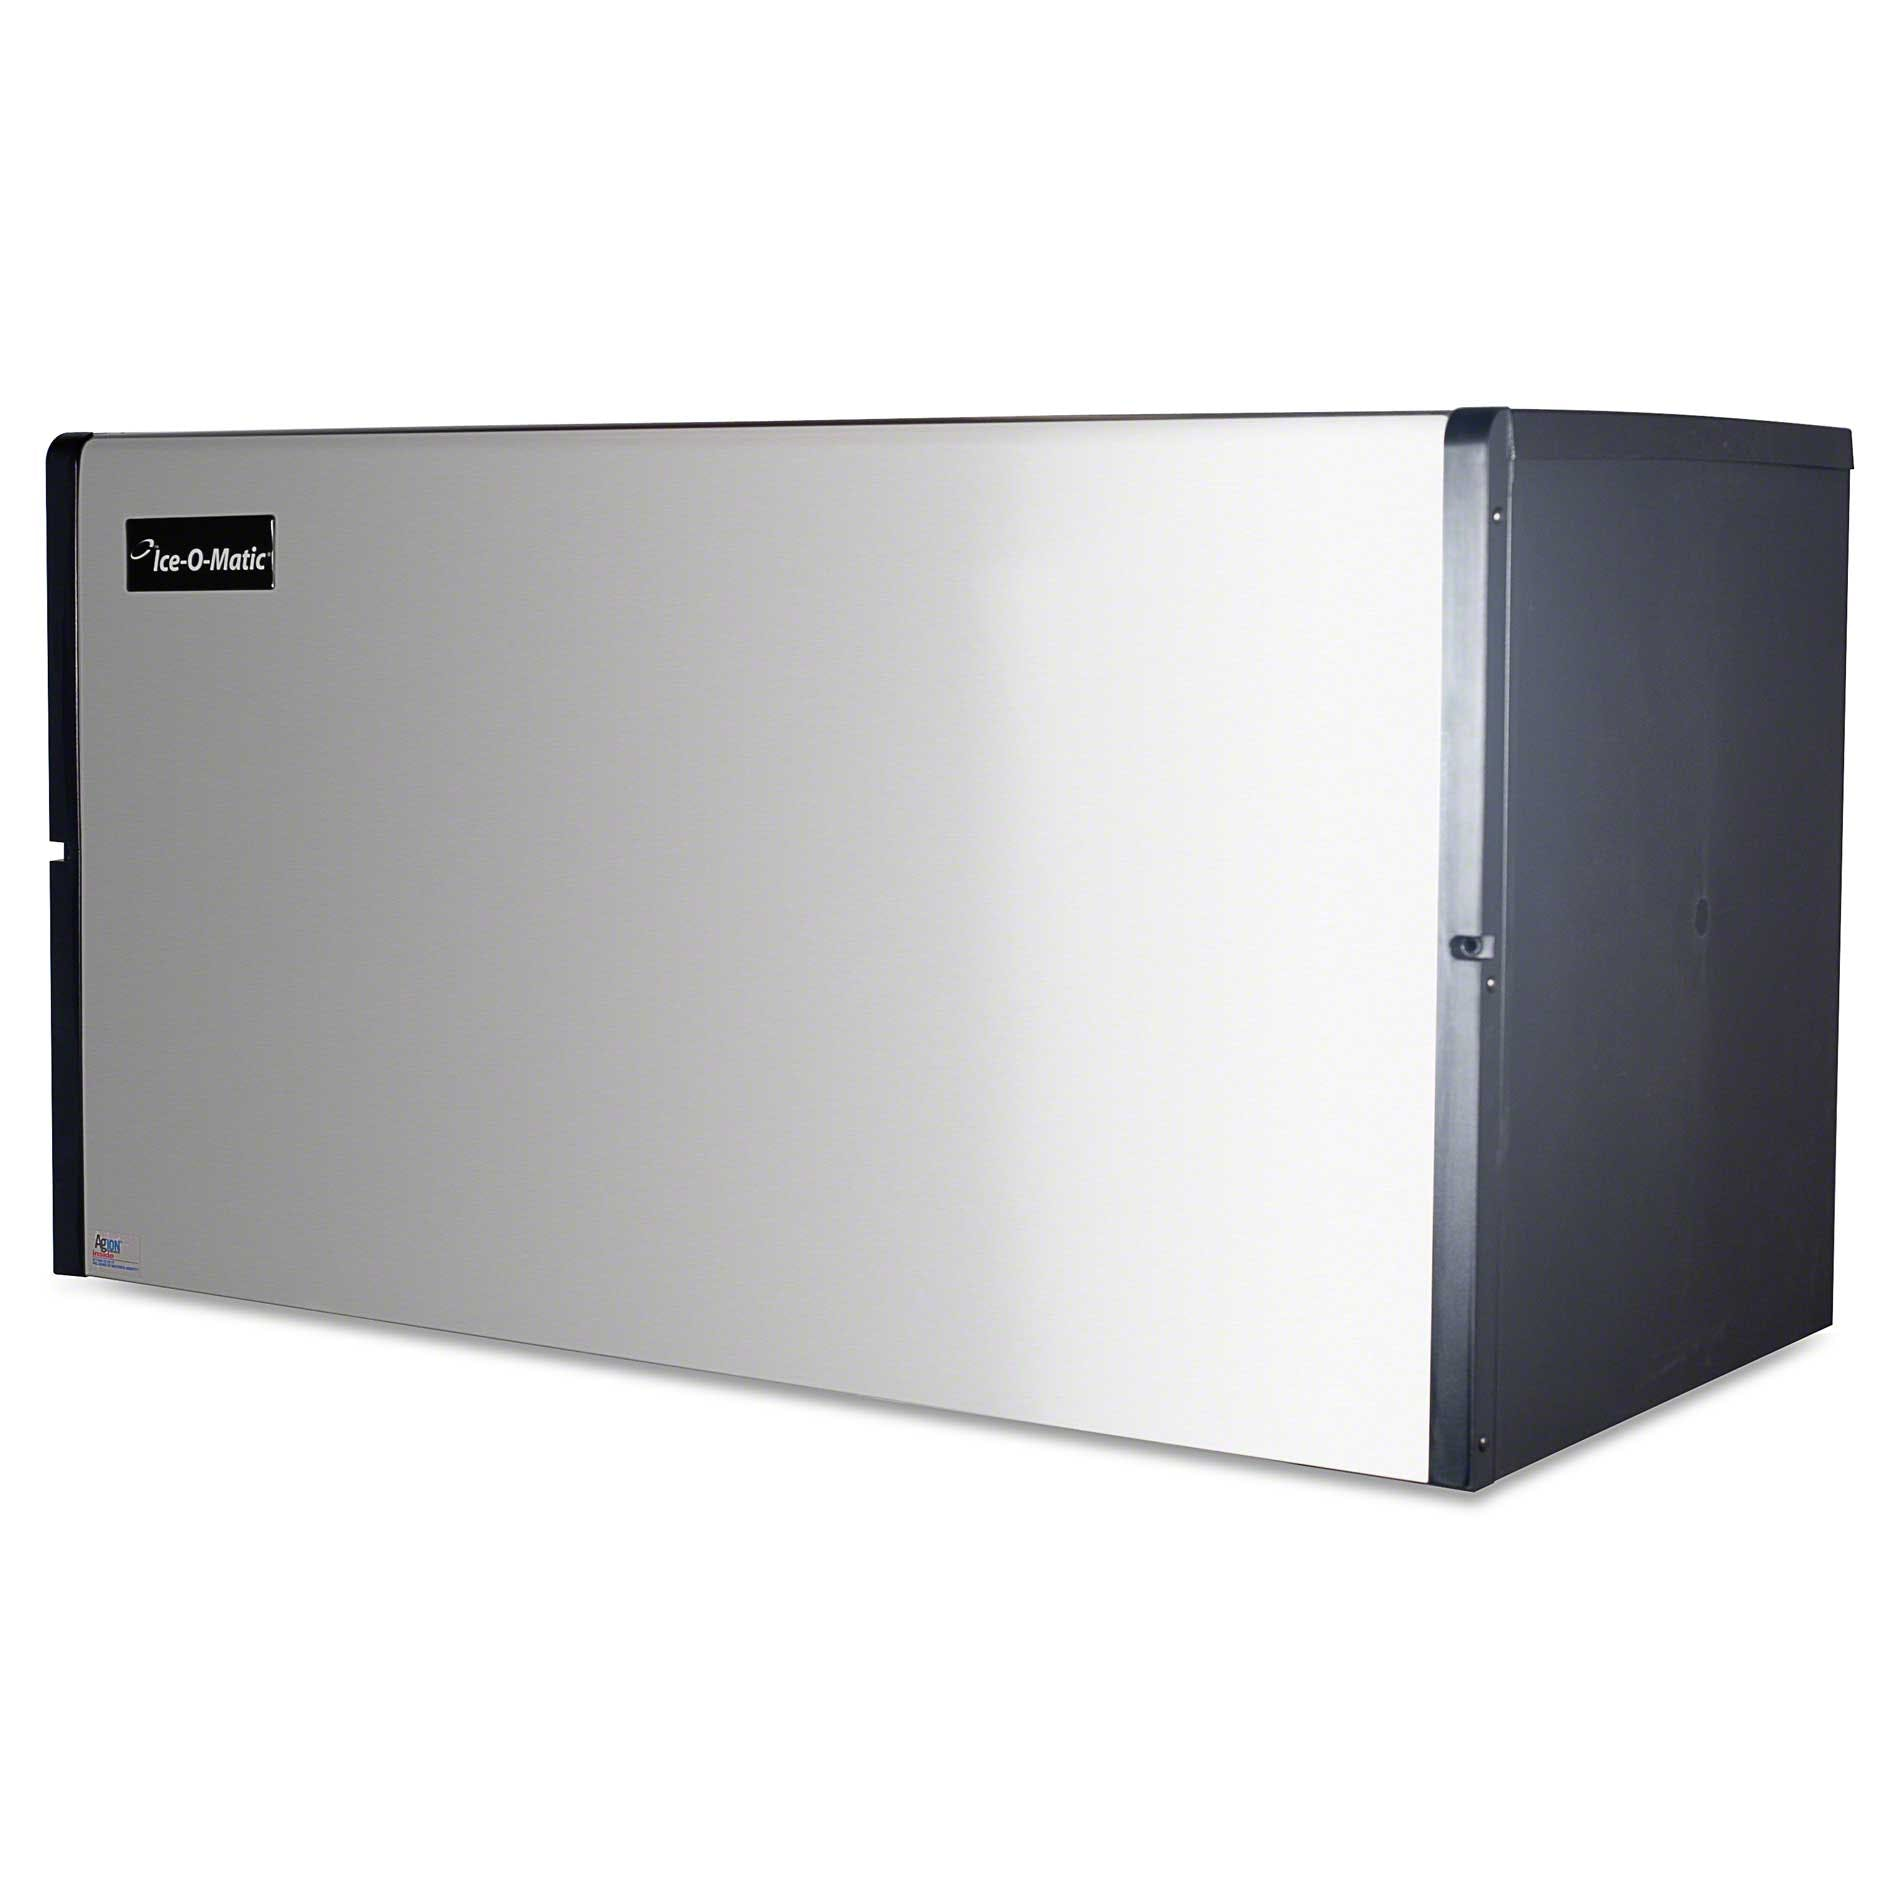 Ice-O-Matic - ICE1806FW 1832 lb Full Size Cube Ice Machine Ice machine sold by Food Service Warehouse